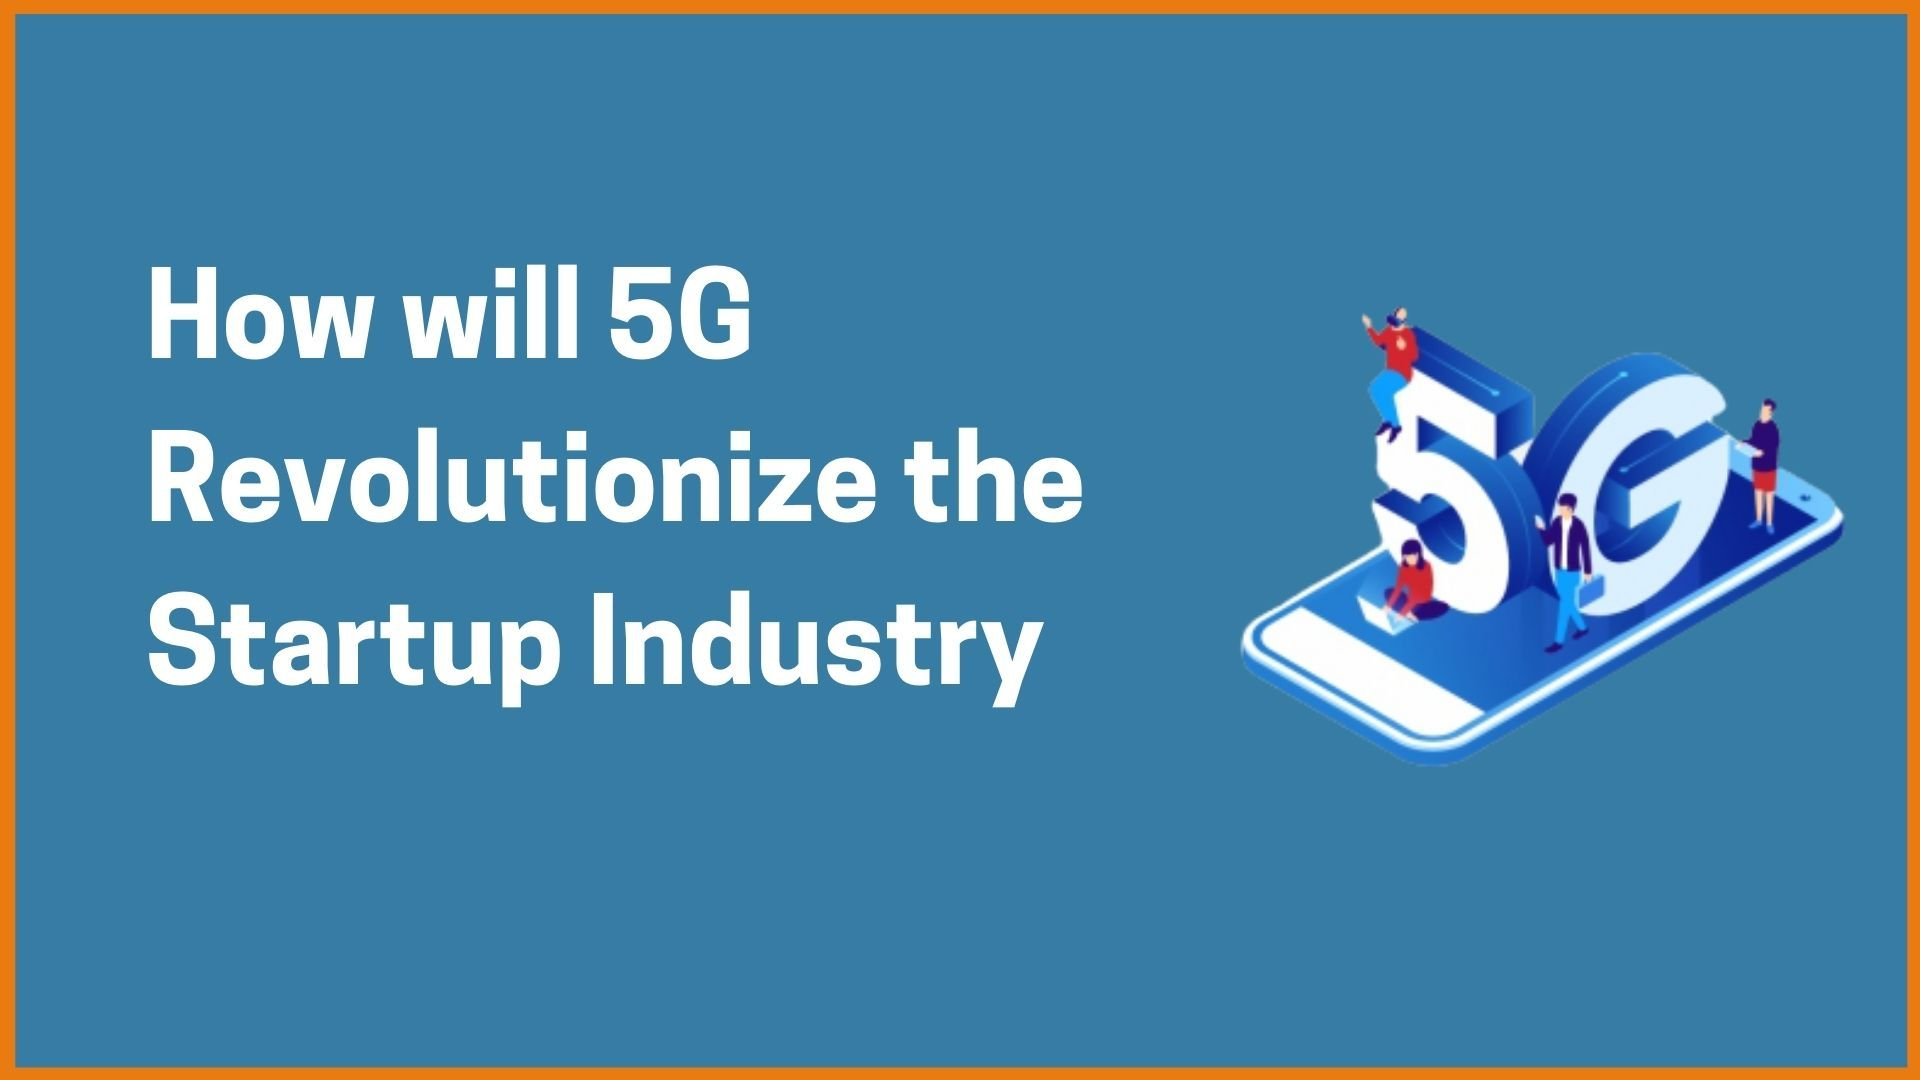 How will 5G Revolutionize the Indian Startup Industry?